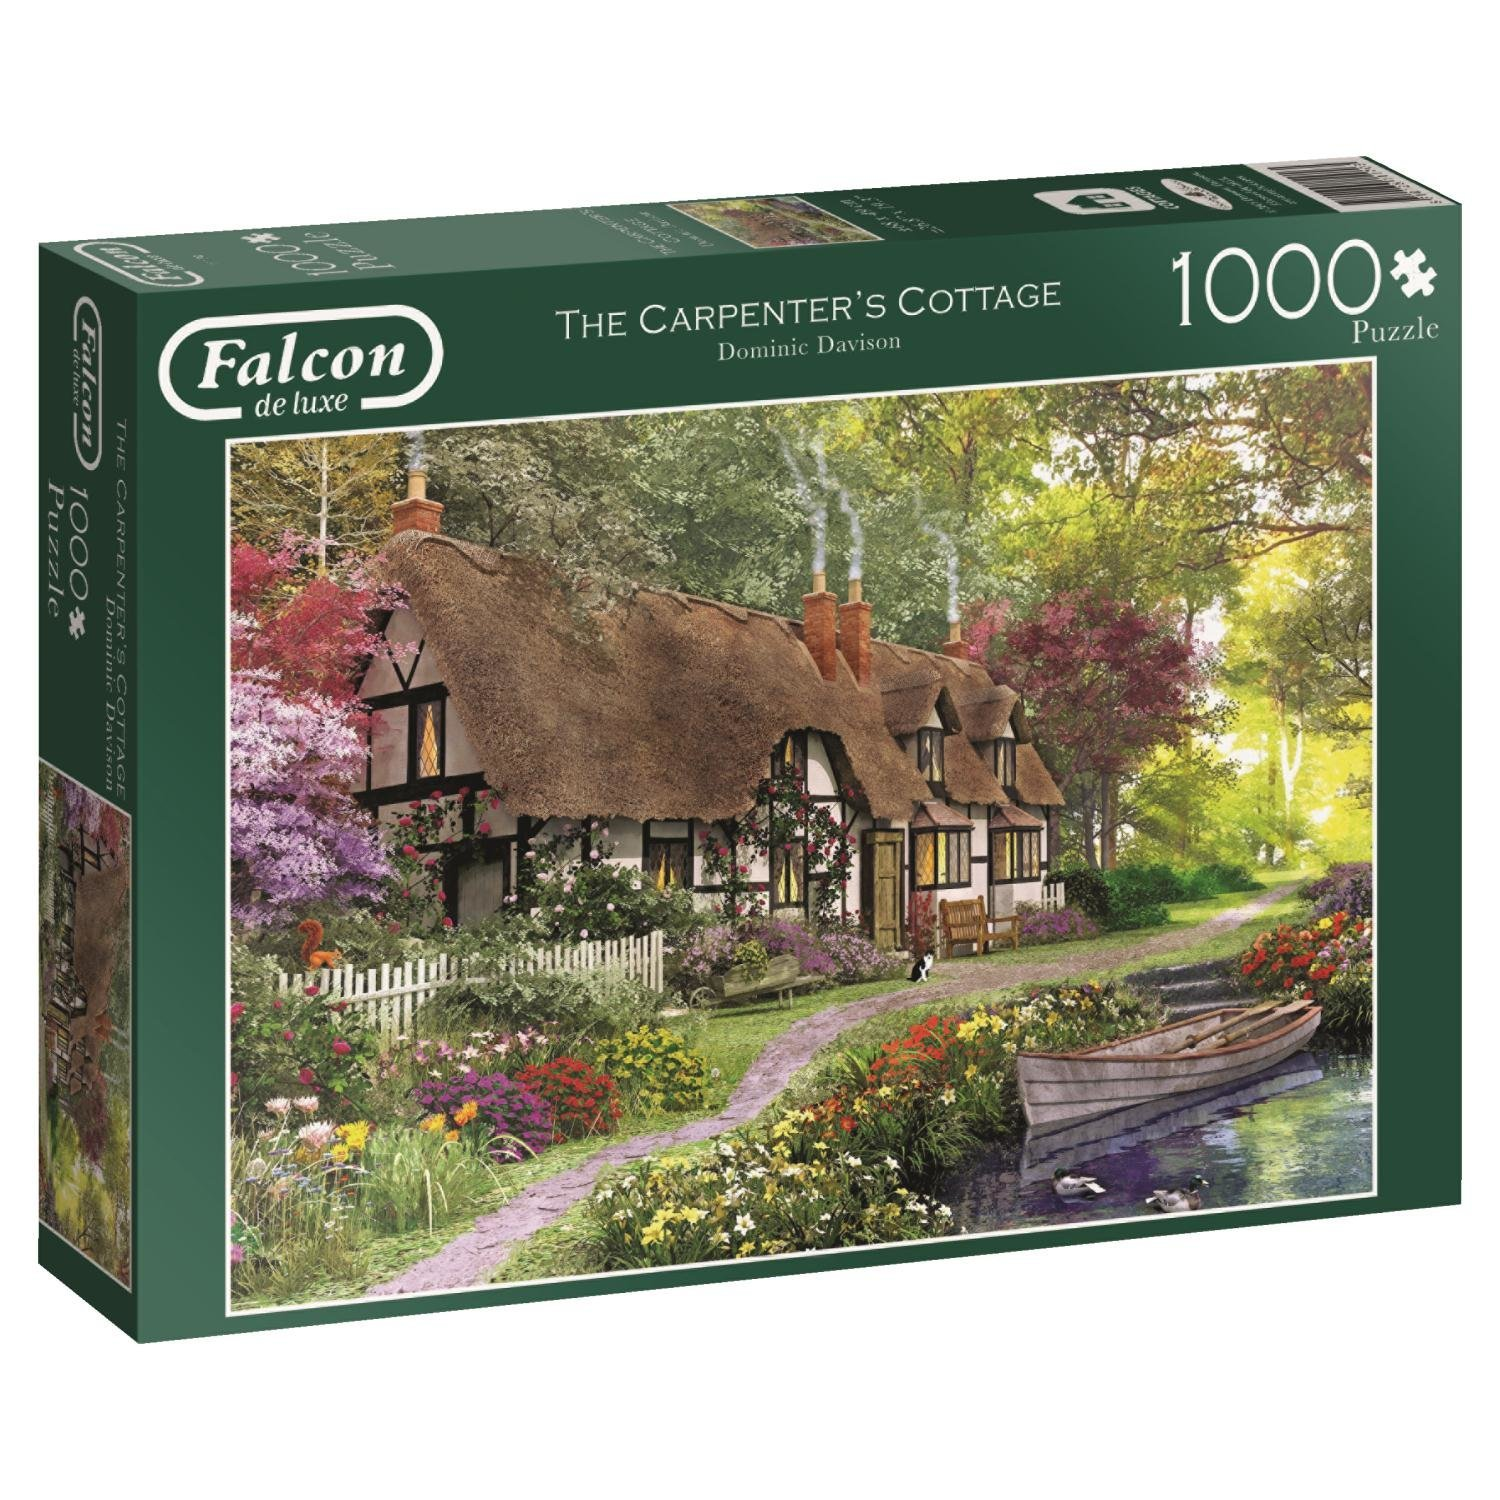 Falcon, Carpenters Cottage, 1000pc Jumbo Jigsaw